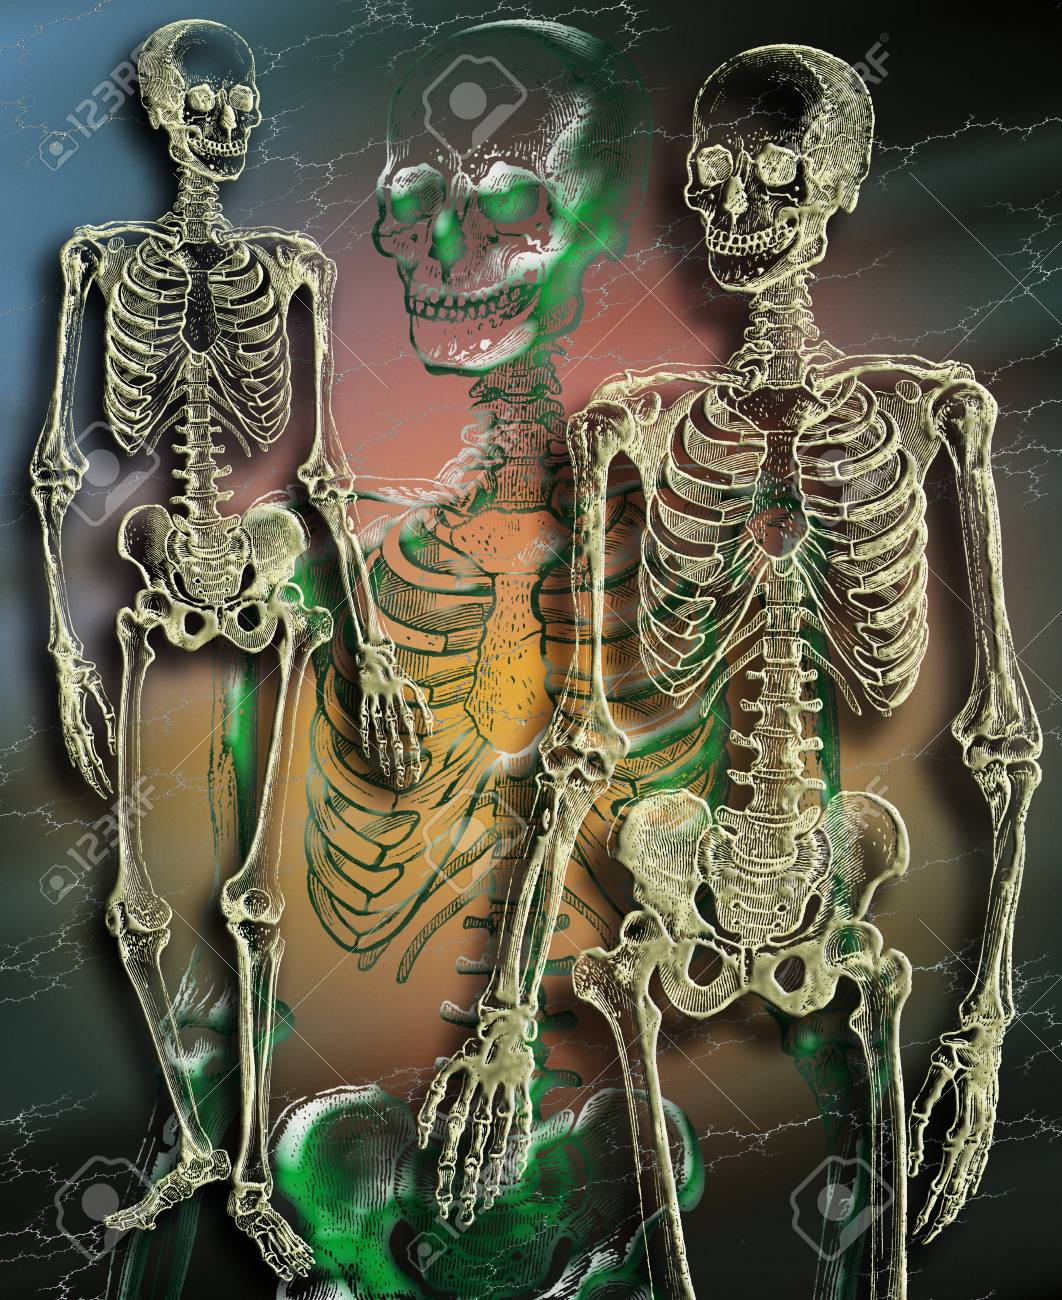 Human Skeleton - Study Of Anatomy Stock Photo, Picture And Royalty ...